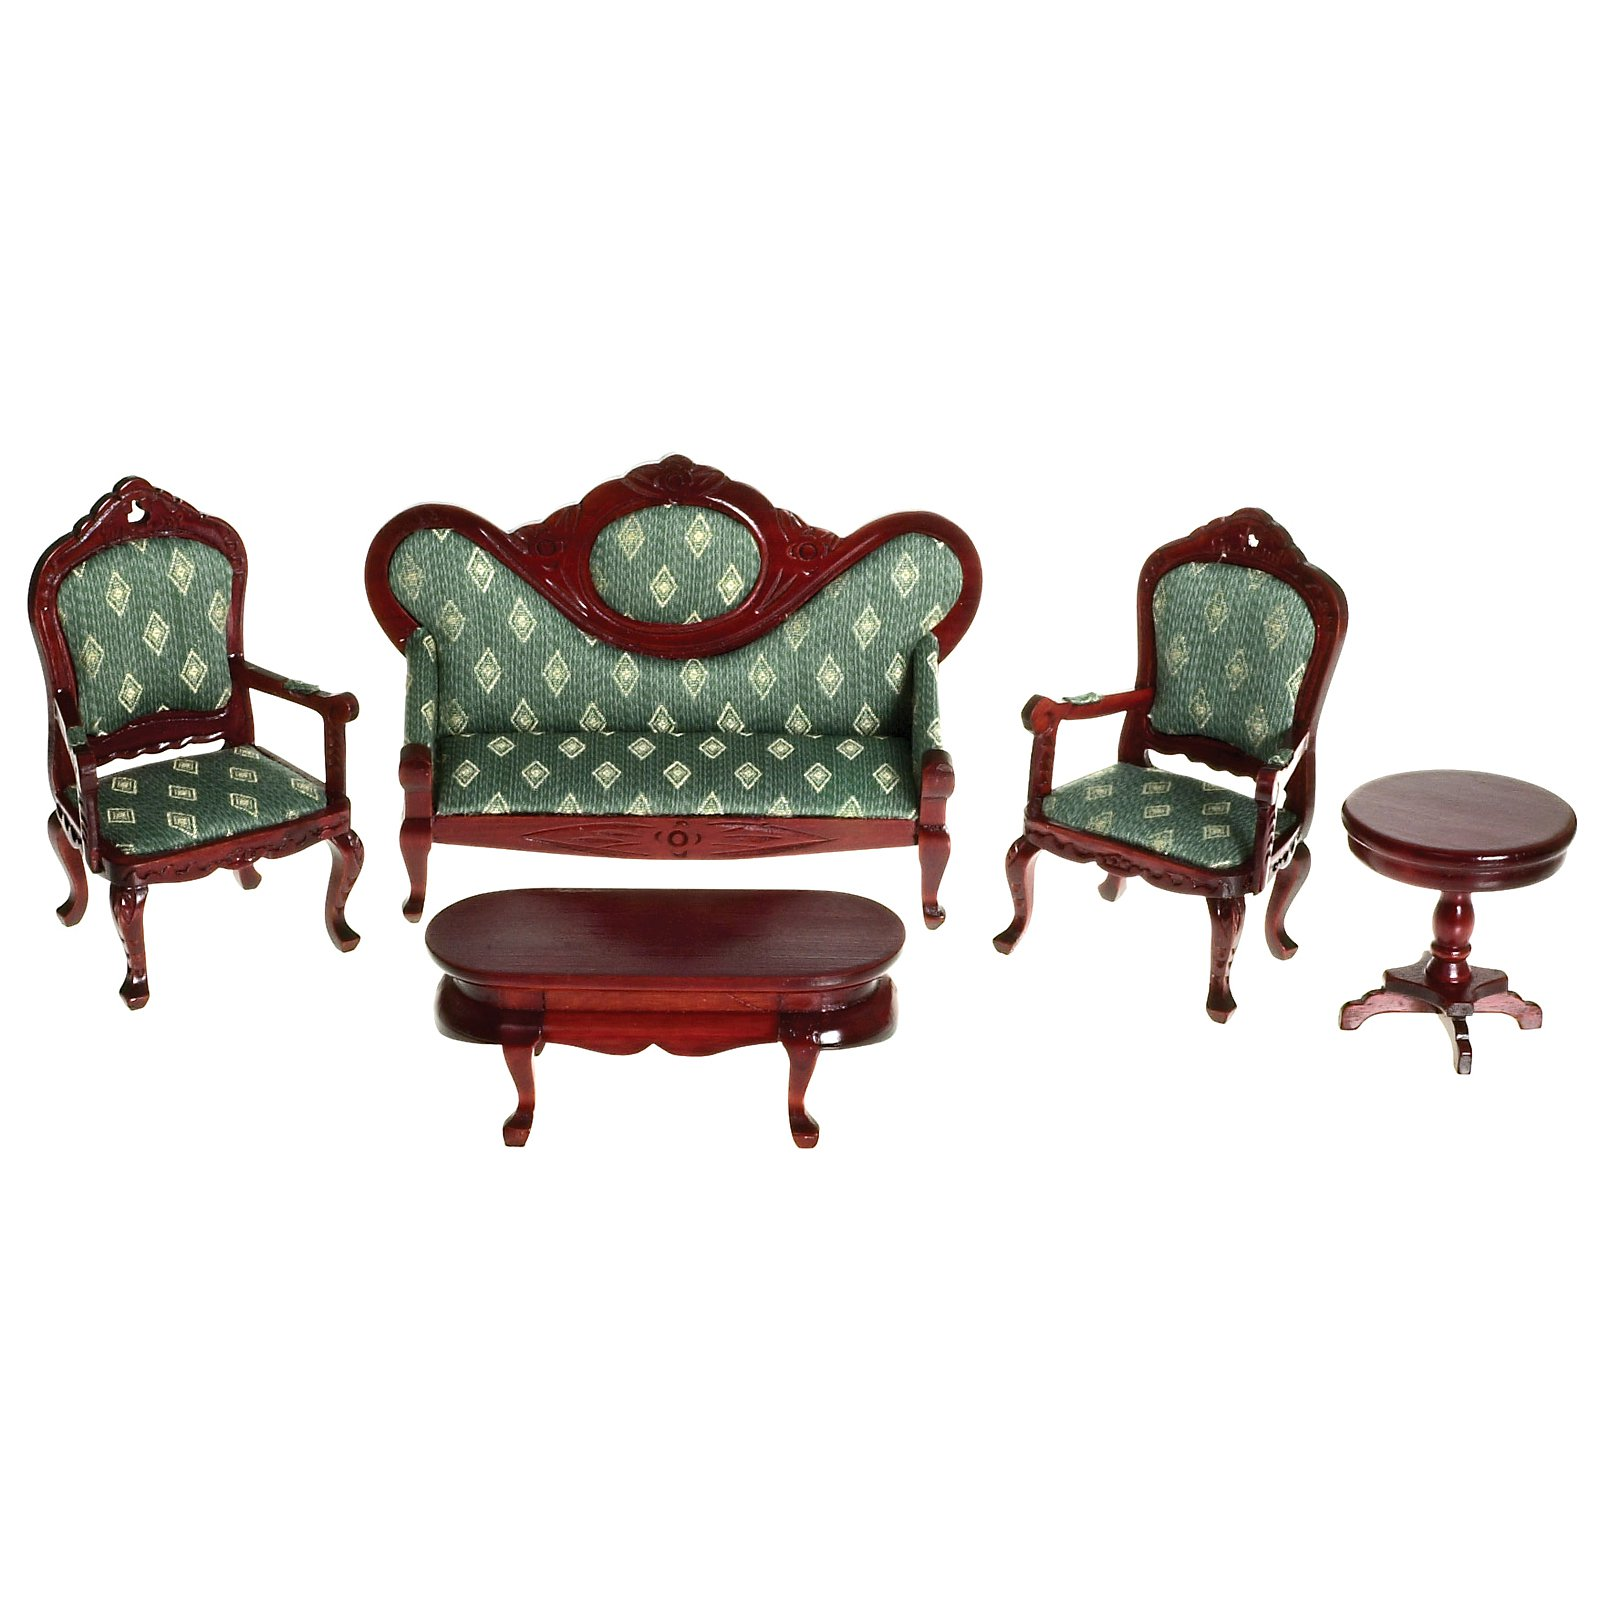 Living Room Set Dollhouse Furniture 1 12 Scale T6235